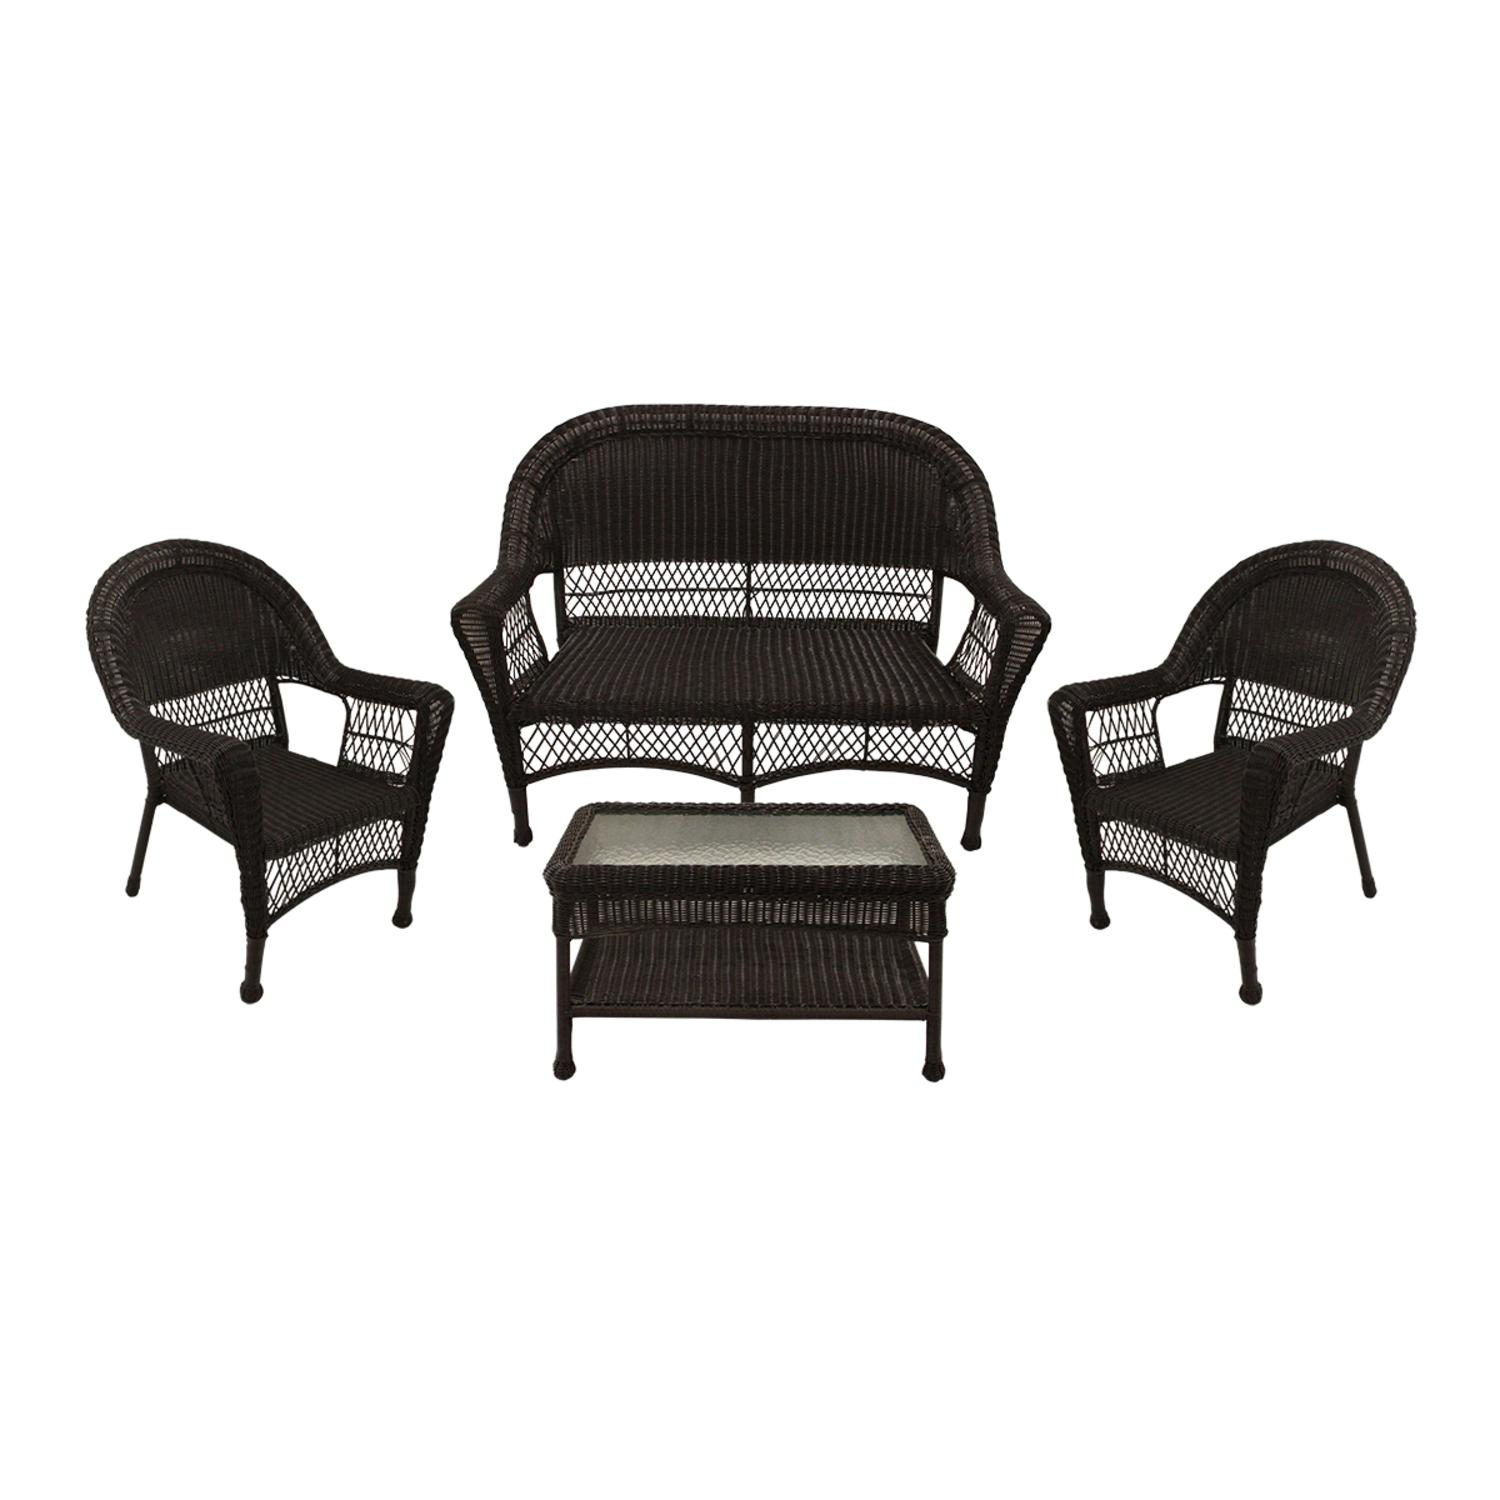 4-Piece Brown Resin Wicker Patio Furniture Set 2 Chairs, Loveseat & Coffee Table by LB International